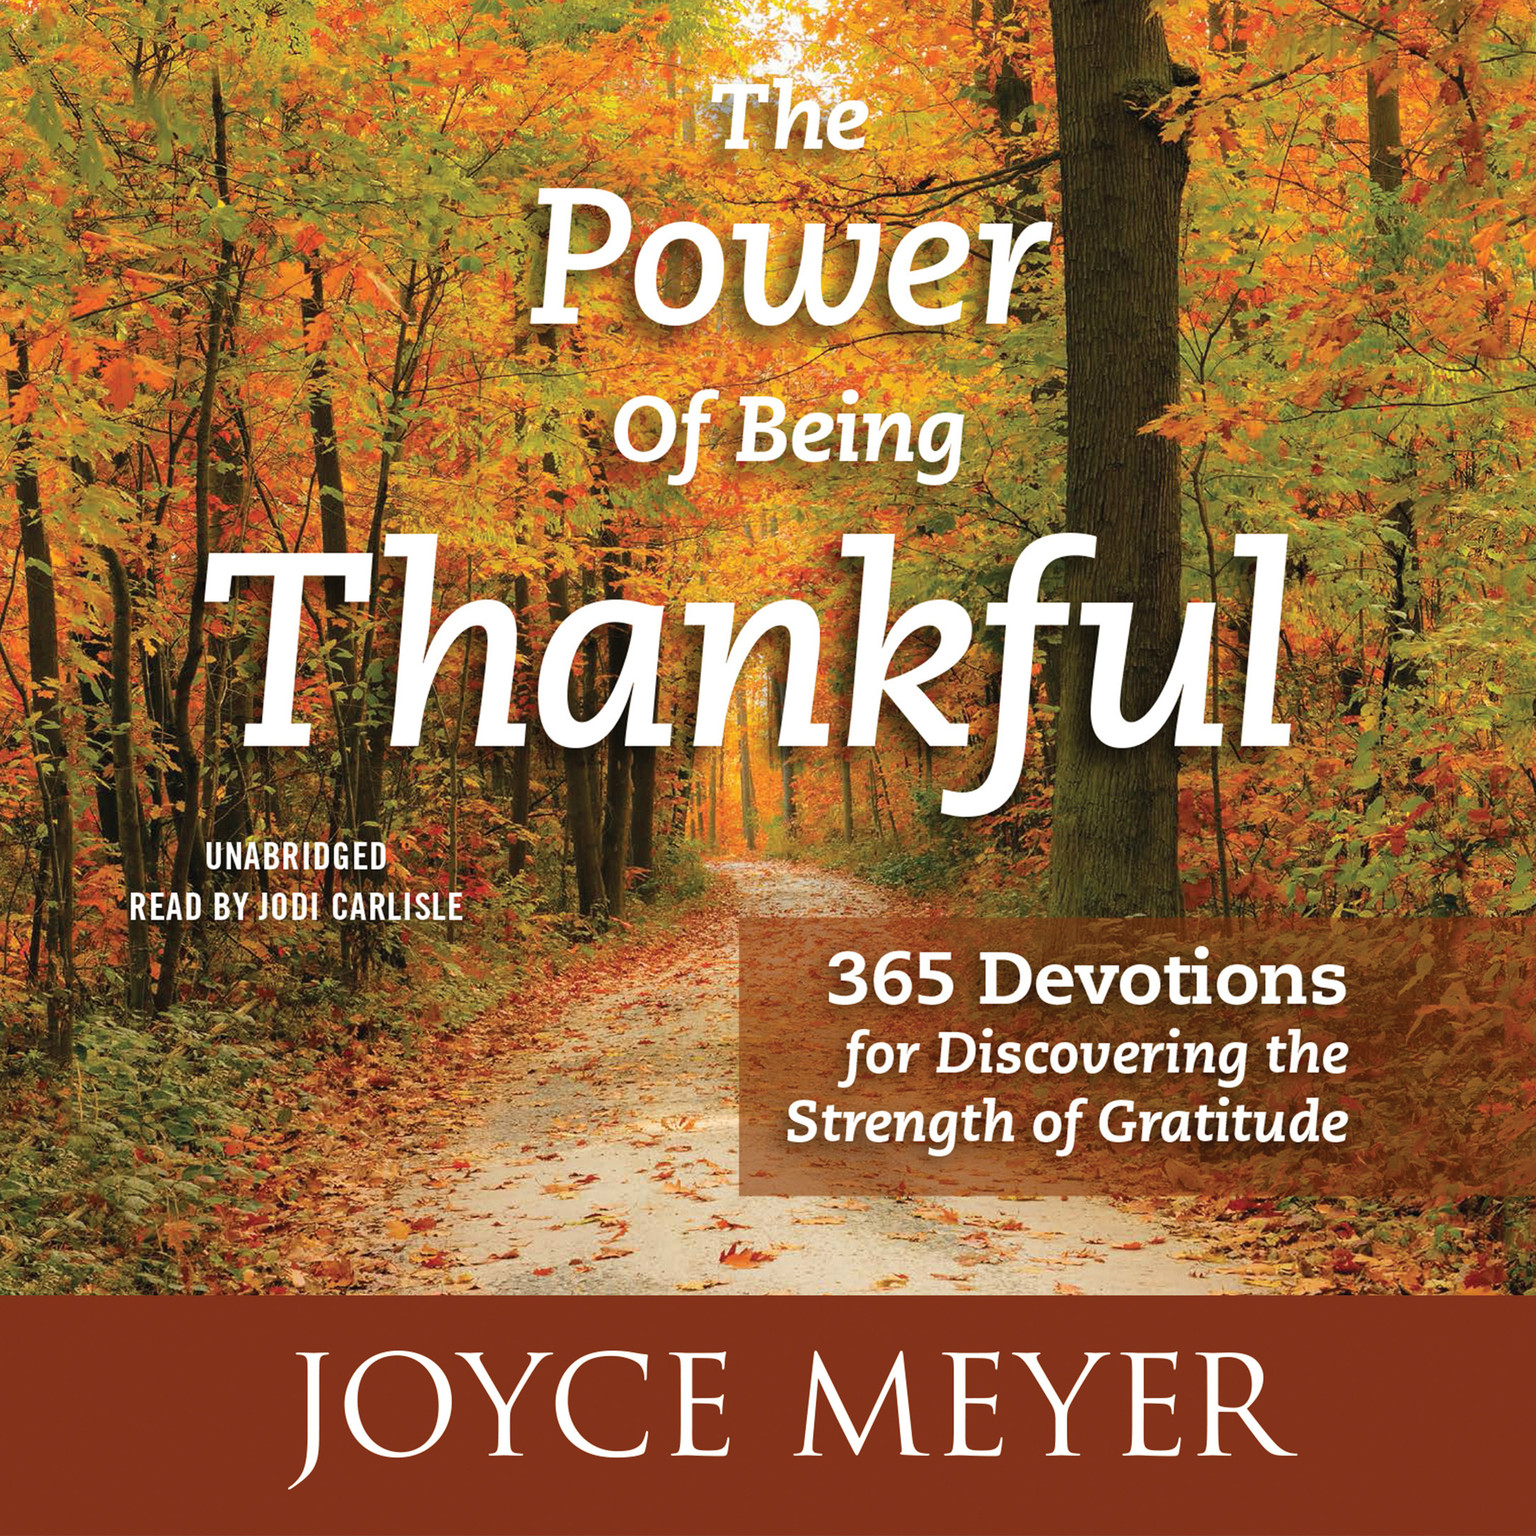 Printable The Power of Being Thankful: 365 Devotions for Discovering the Strength of Gratitude Audiobook Cover Art